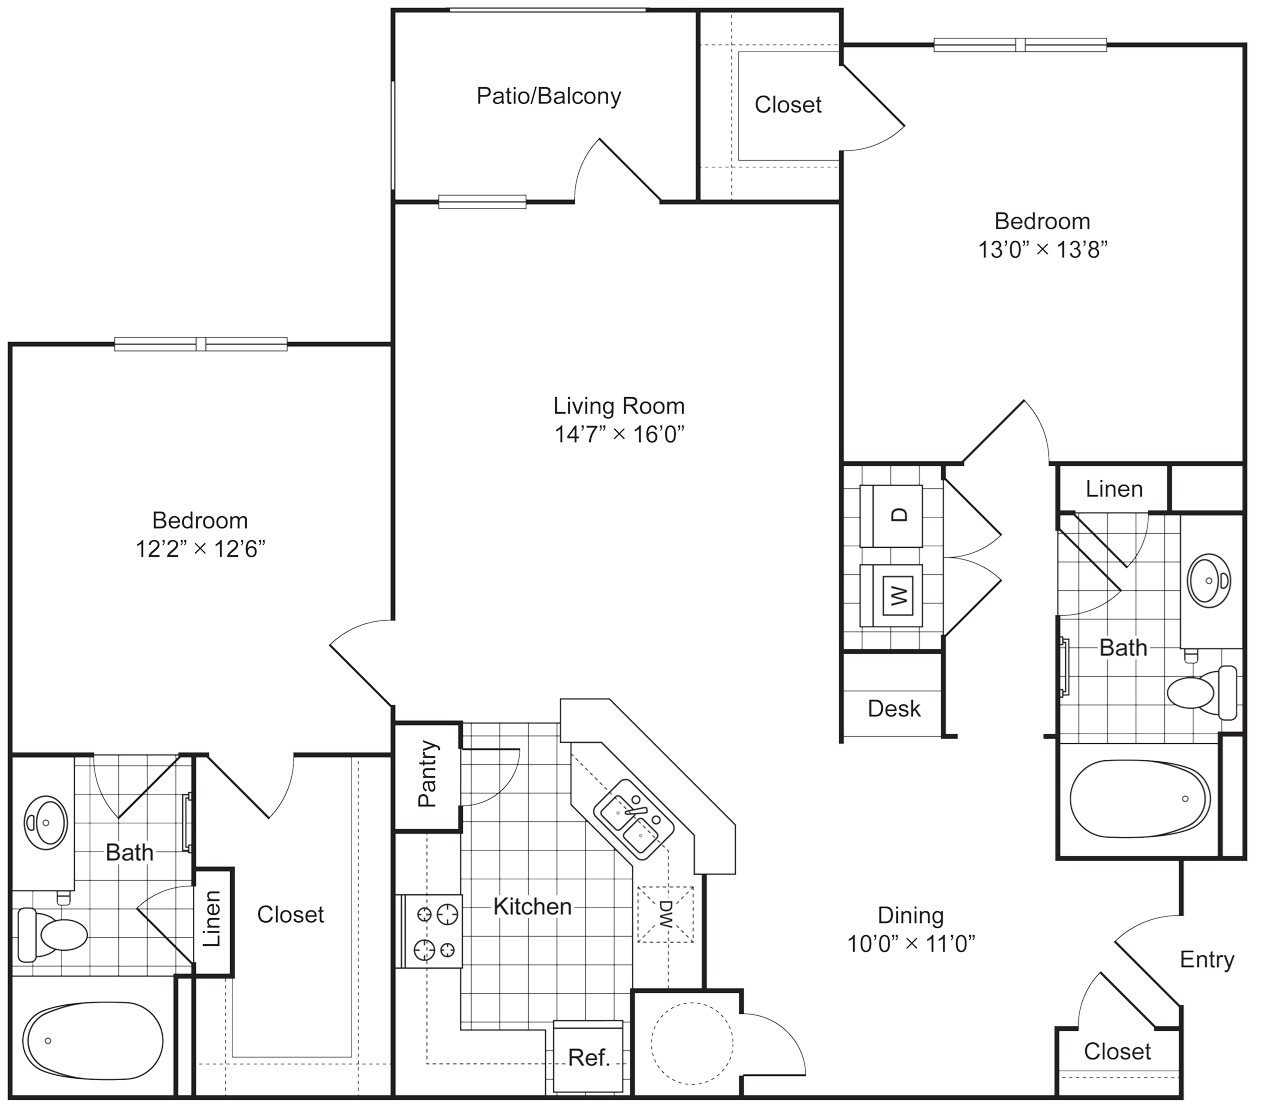 2 Bedroom 2 Bath 1186 sqft (B1G) Floor Plan 4